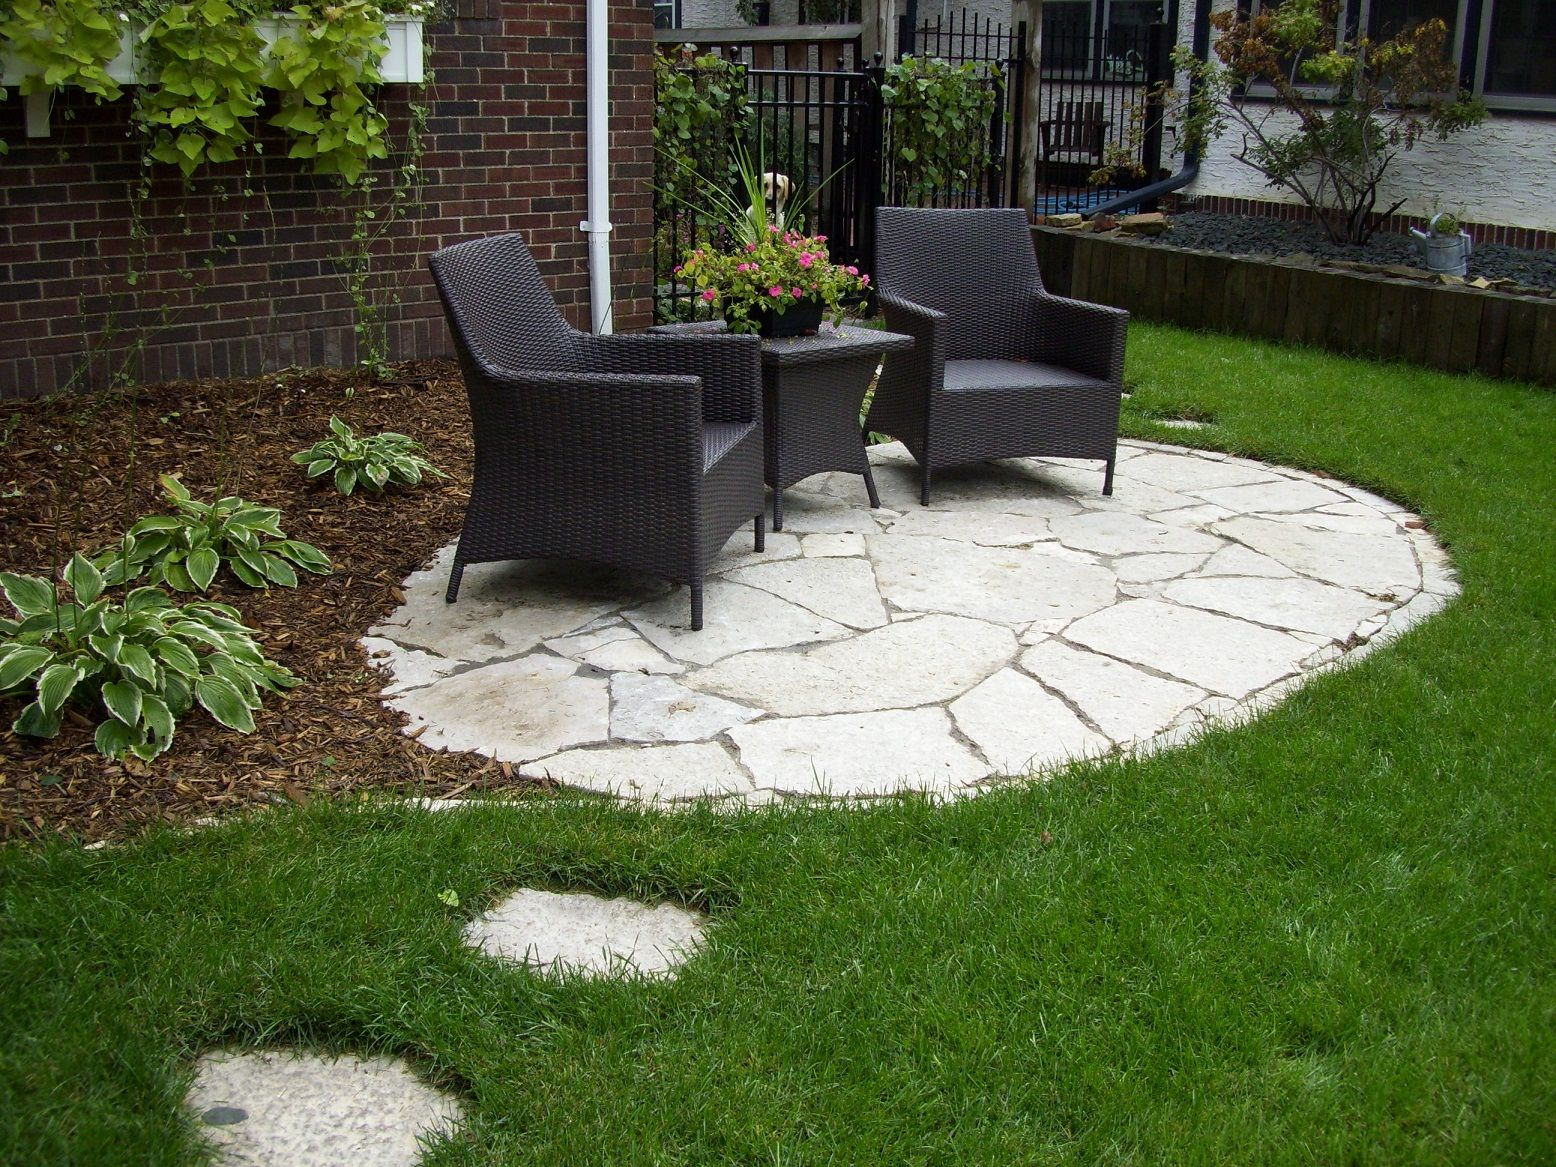 Inexpensive Backyard Ideas Cheap Backyard Patio Ideas Outdoor with 13 Clever Tricks of How to Makeover Inexpensive Backyard Patio Ideas